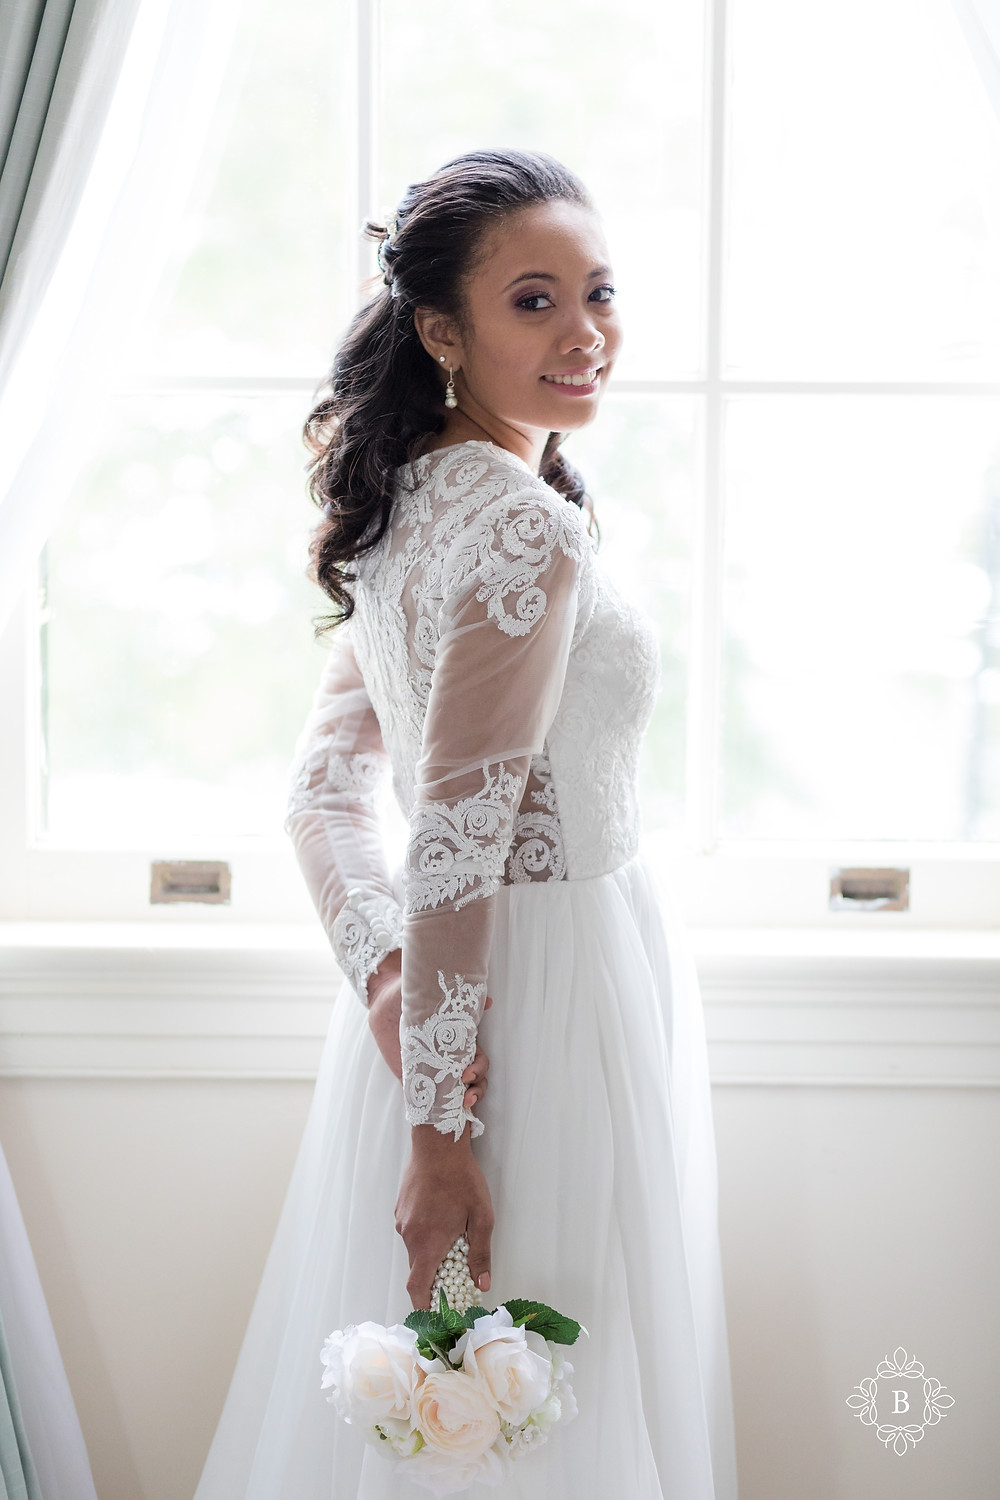 Rust Manor House bride prep elegant dress bride smiling